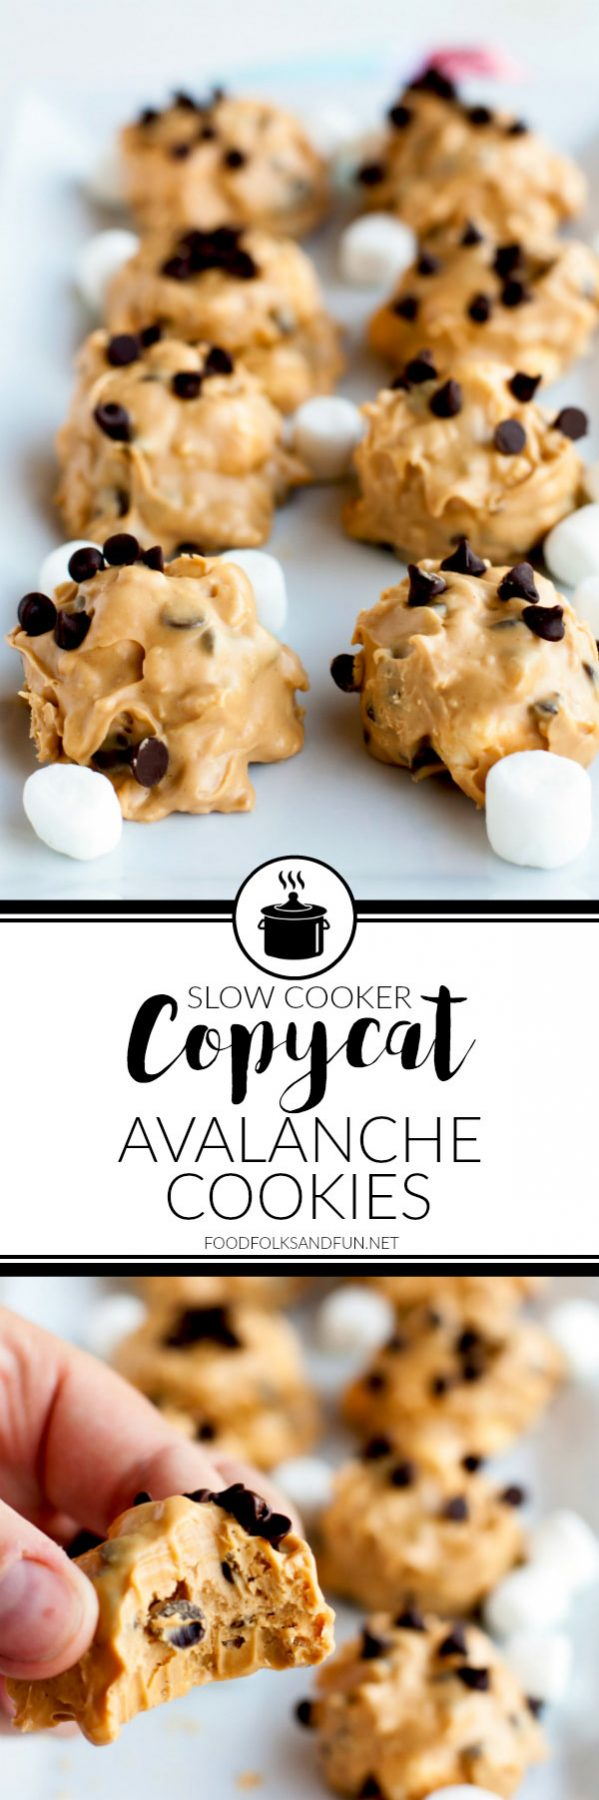 Picture collage of copycat avalanche cookies for Pinterest.